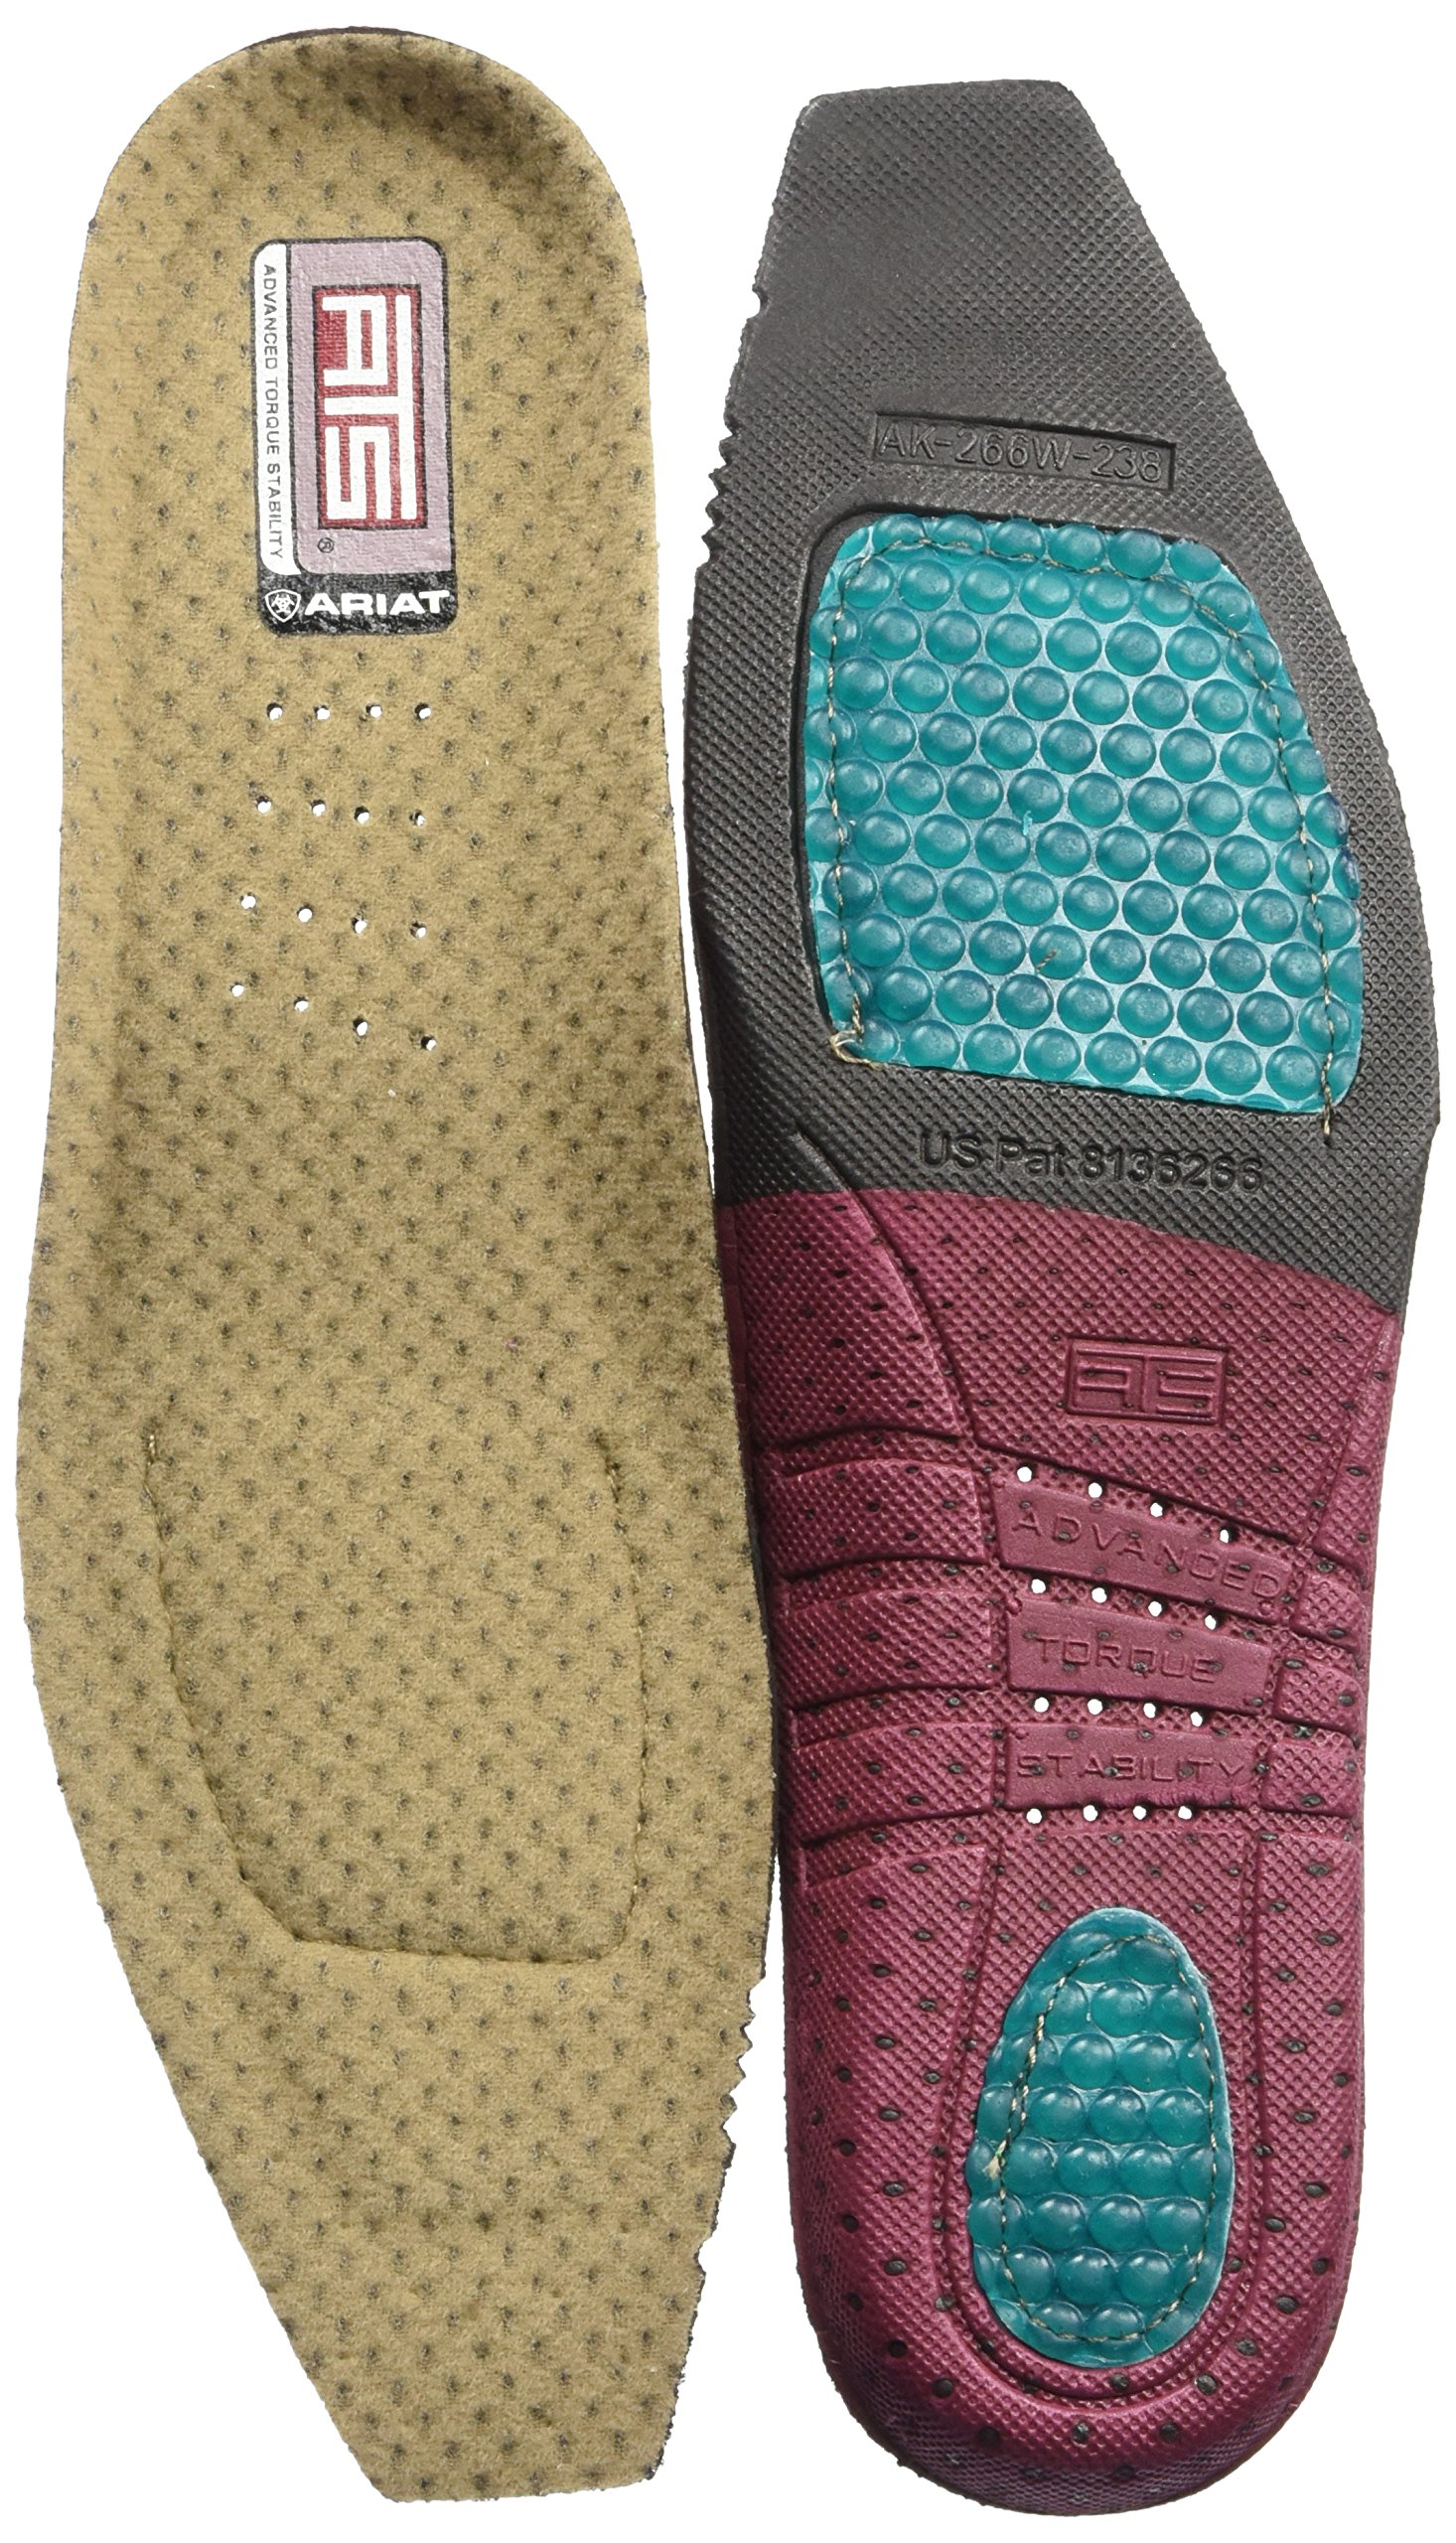 Ariat Women's Ats Square Toe Footbeds, multi, 8